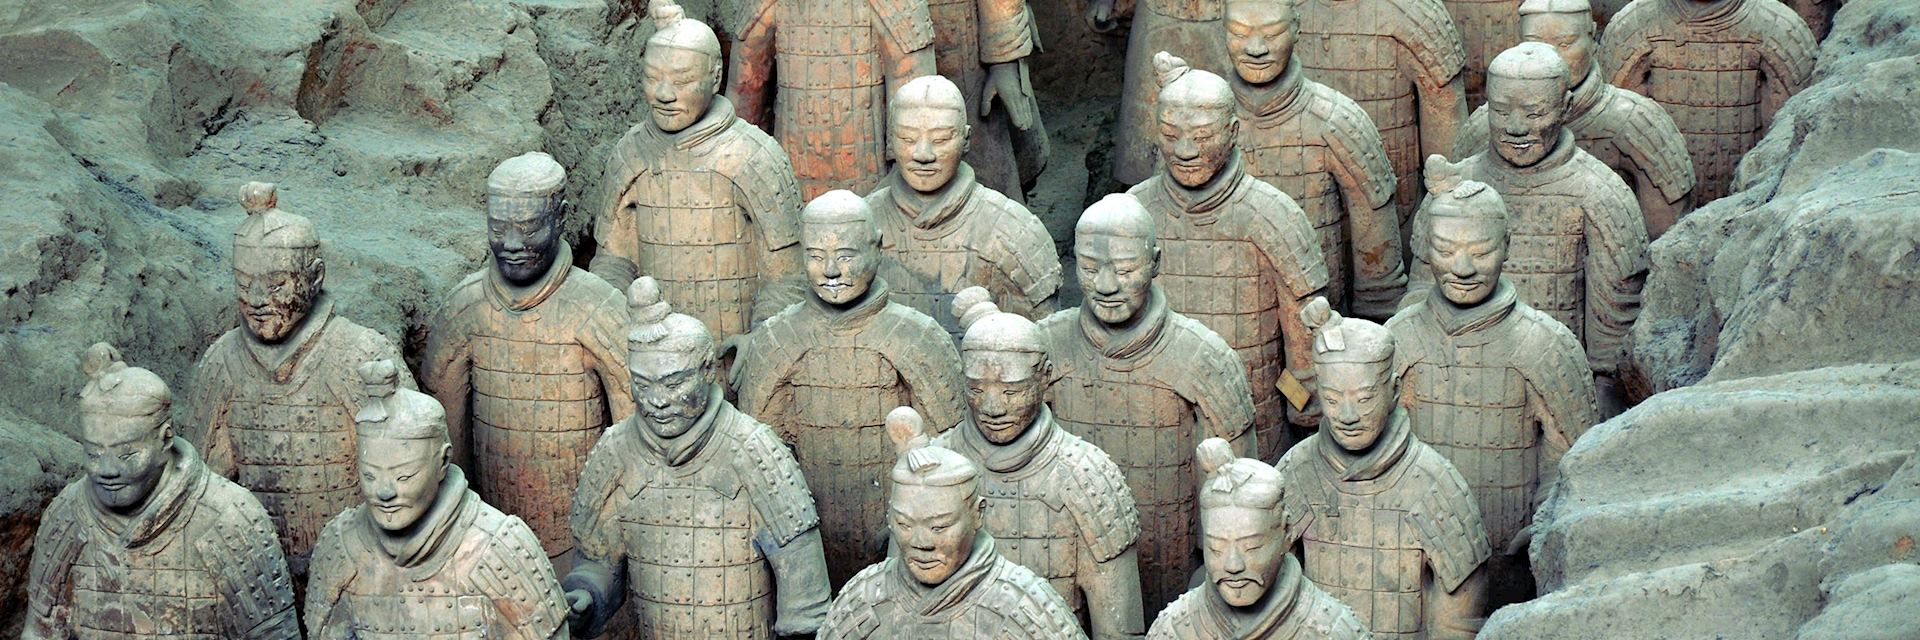 Xi'an's Terracotta Warriors